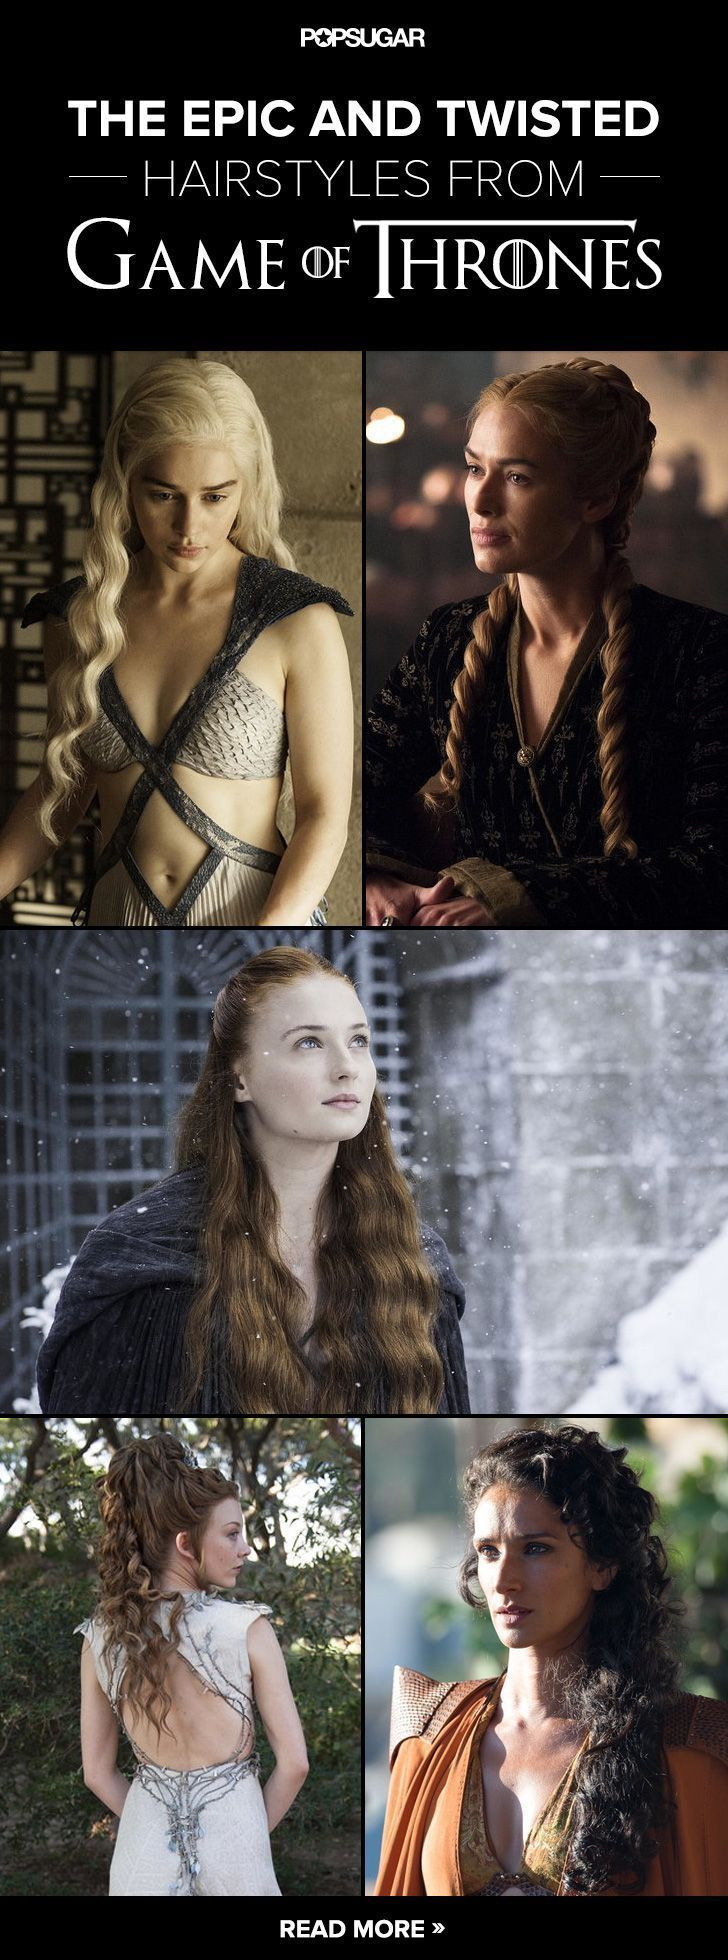 You may be hooked by the intricate plot turns and magical mystery of Game of Thrones, but it's partly the woven and twisted hairdos that keep us coming back. Since it's easy to miss a great hairstyle when you're focused on the show's shocking plot, we've rounded up some of the most intricate styles from the series. Brace yourself for all the (hair) twists and turns of season five! These braids are so complex, you'll need a lady-in-waiting to assist.